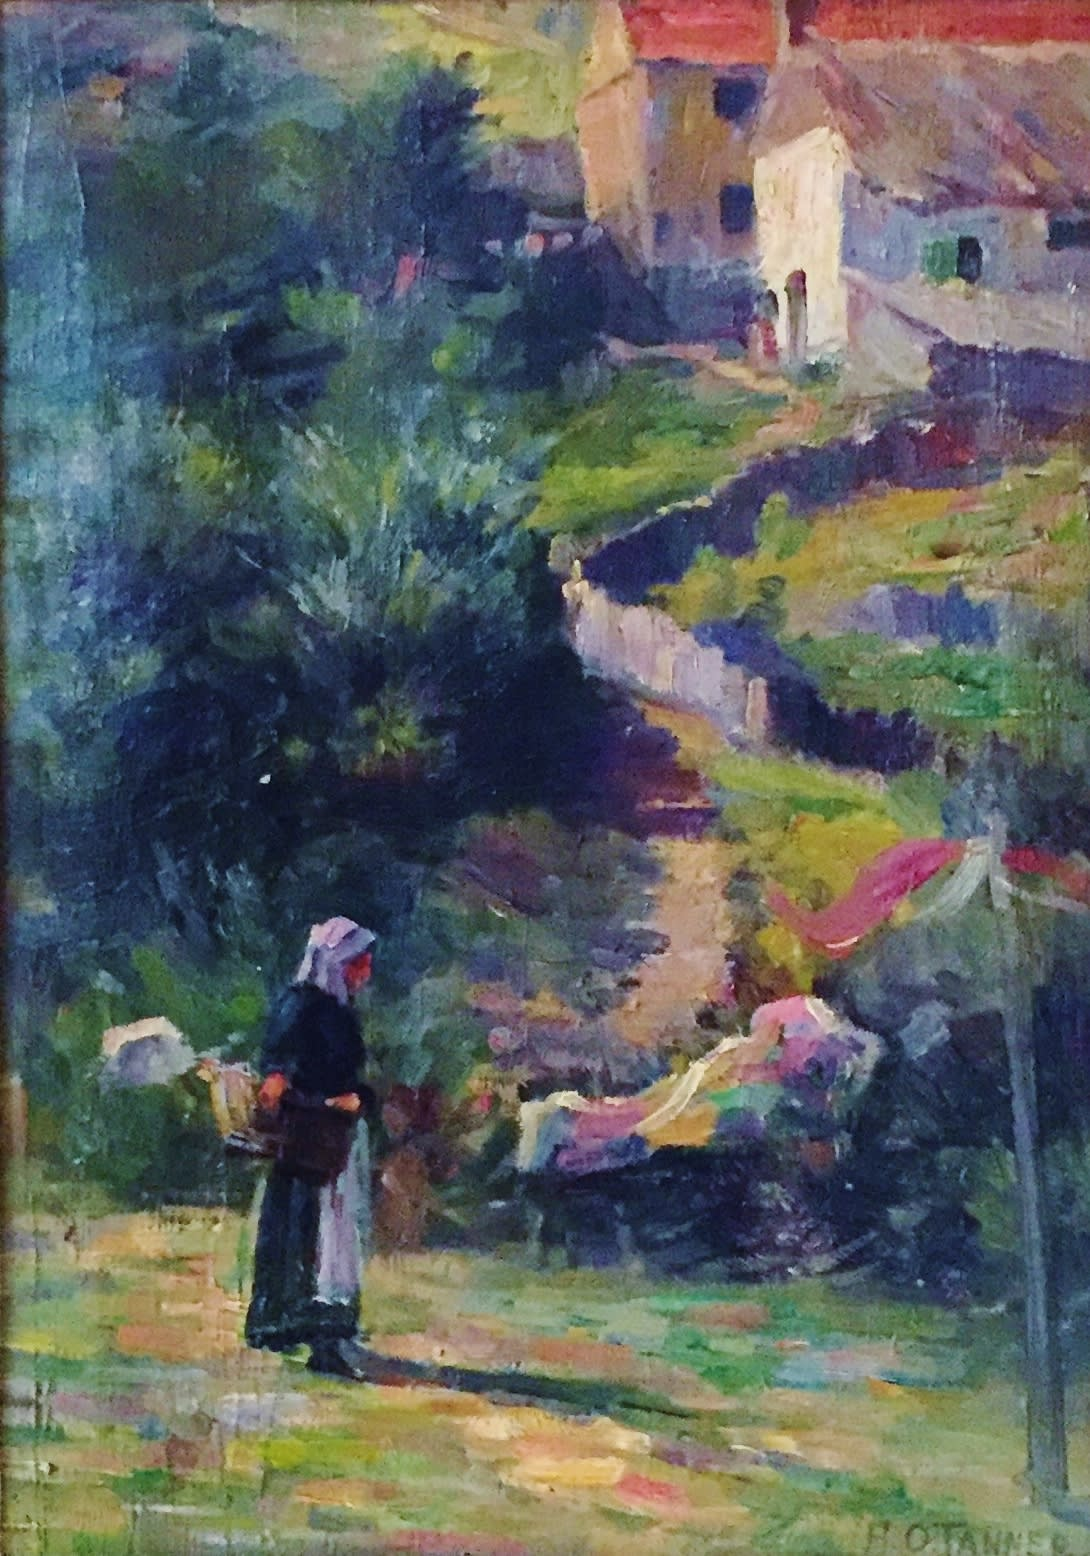 Henry Ossawa Tanner Untitled, Landscape with female figure, c. 1888 Oil on Canvas Framed: 17 x 21 x 1 3/4 Unframed: 14 x 10